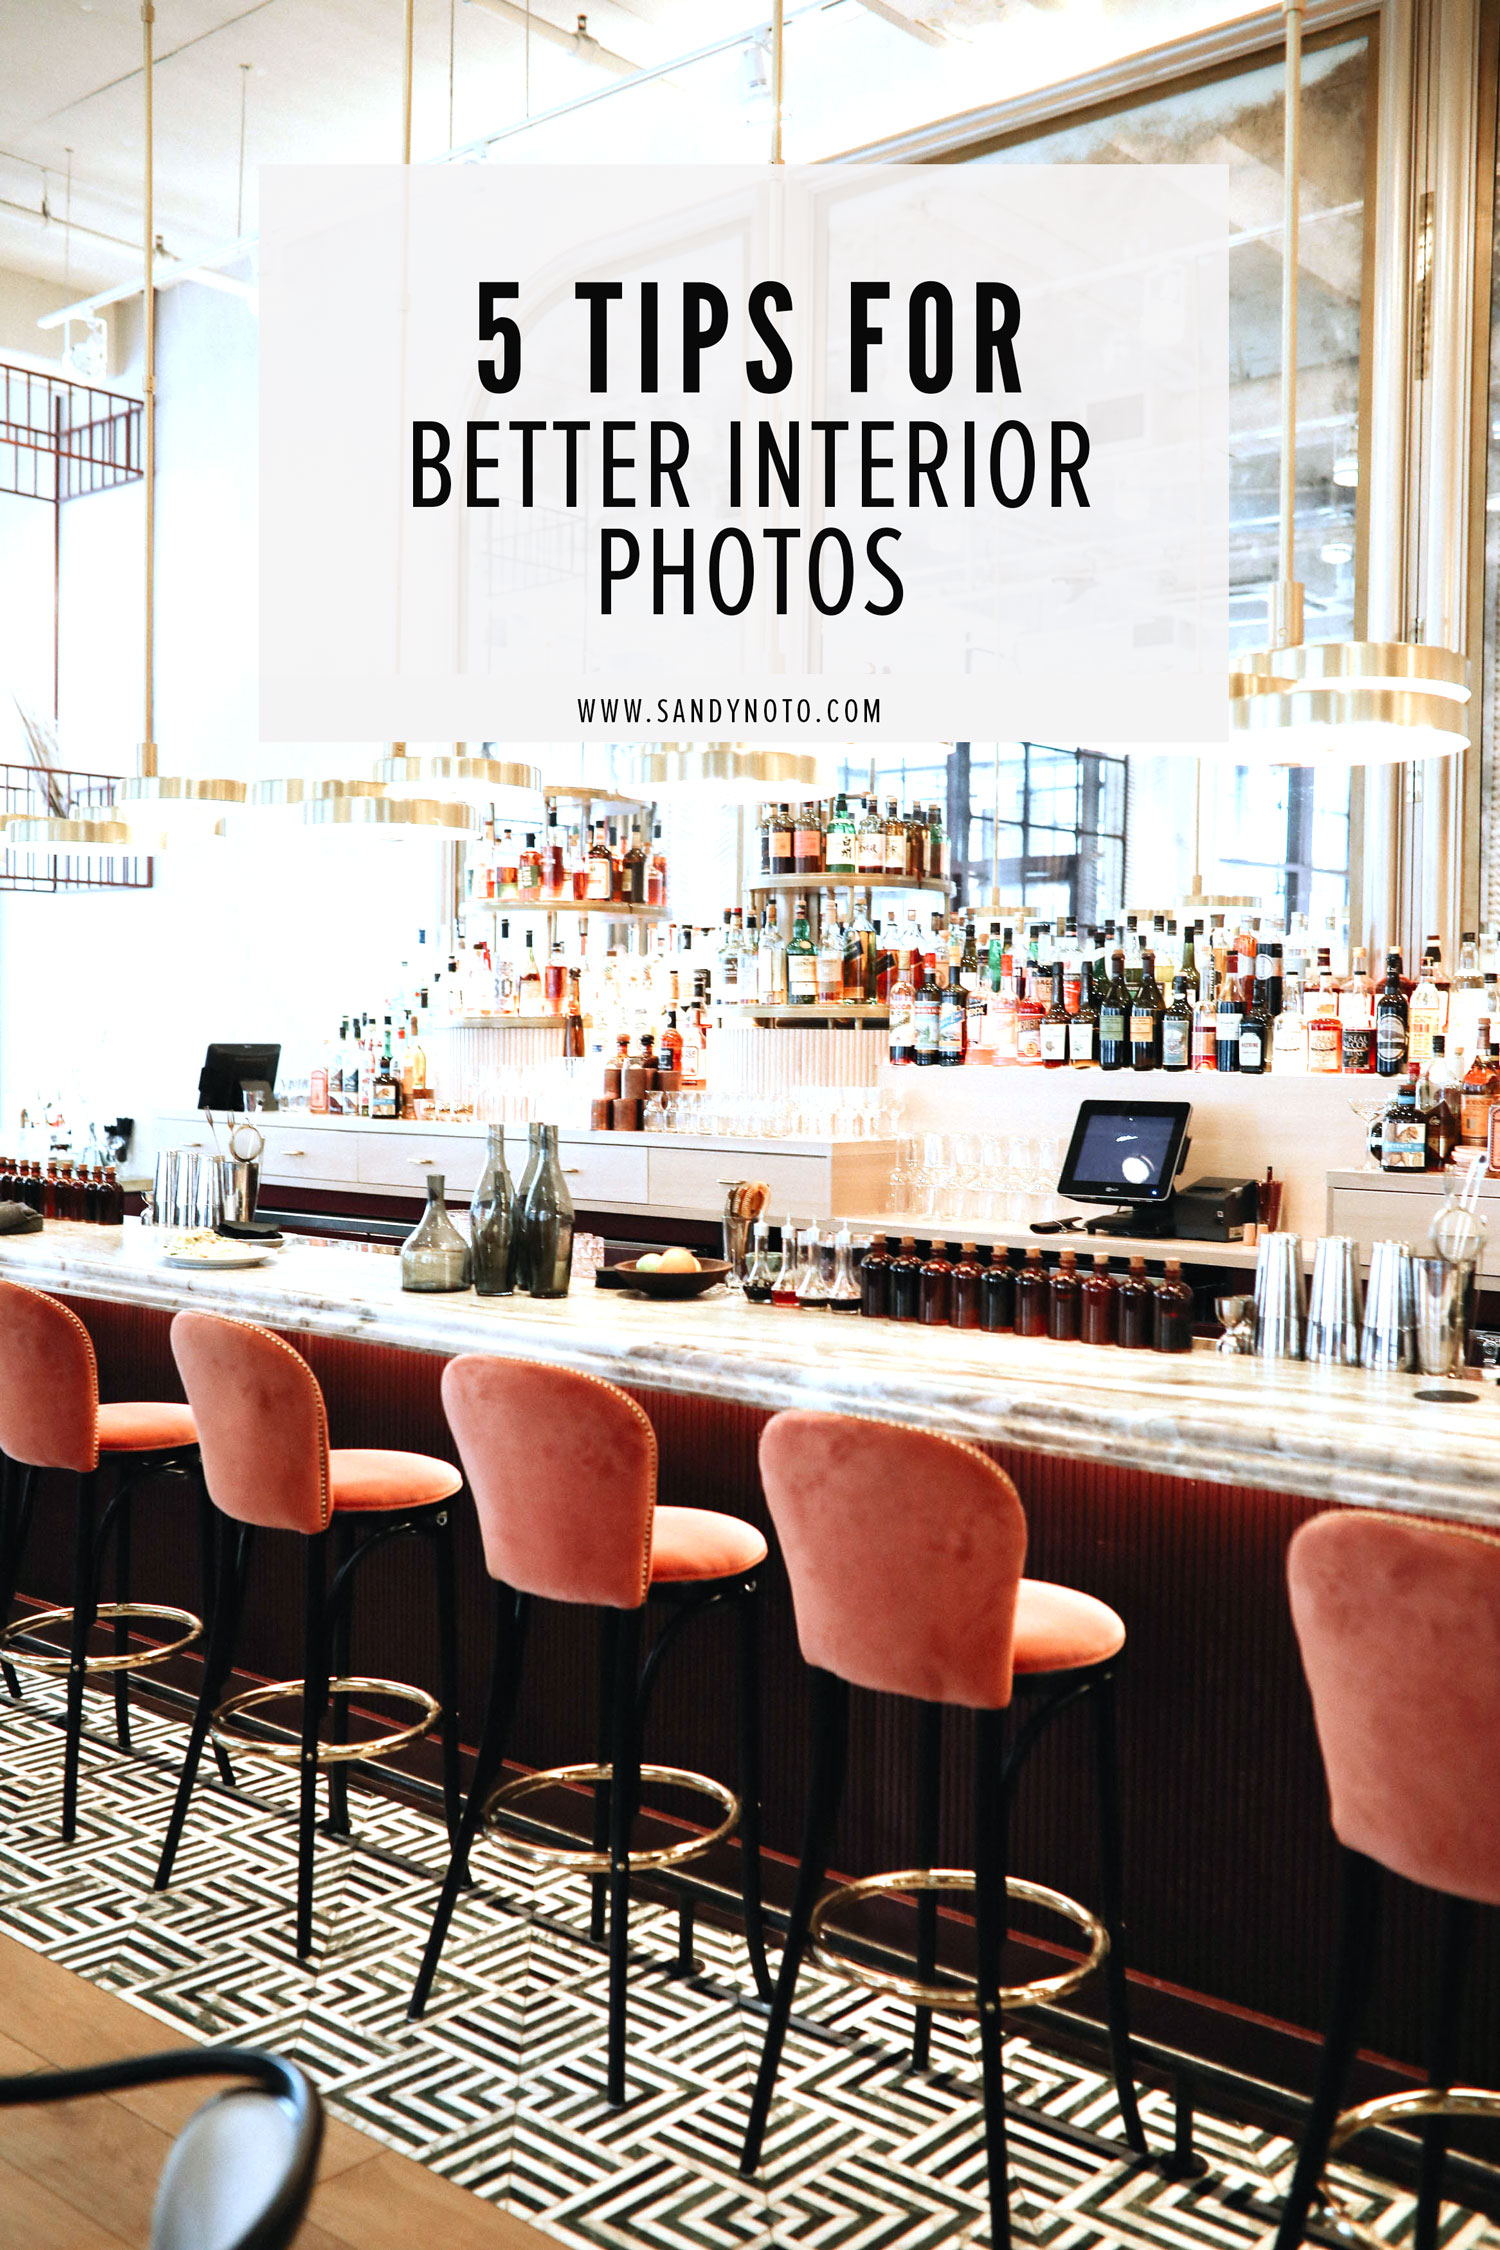 5 Tips For Better Interior Photography